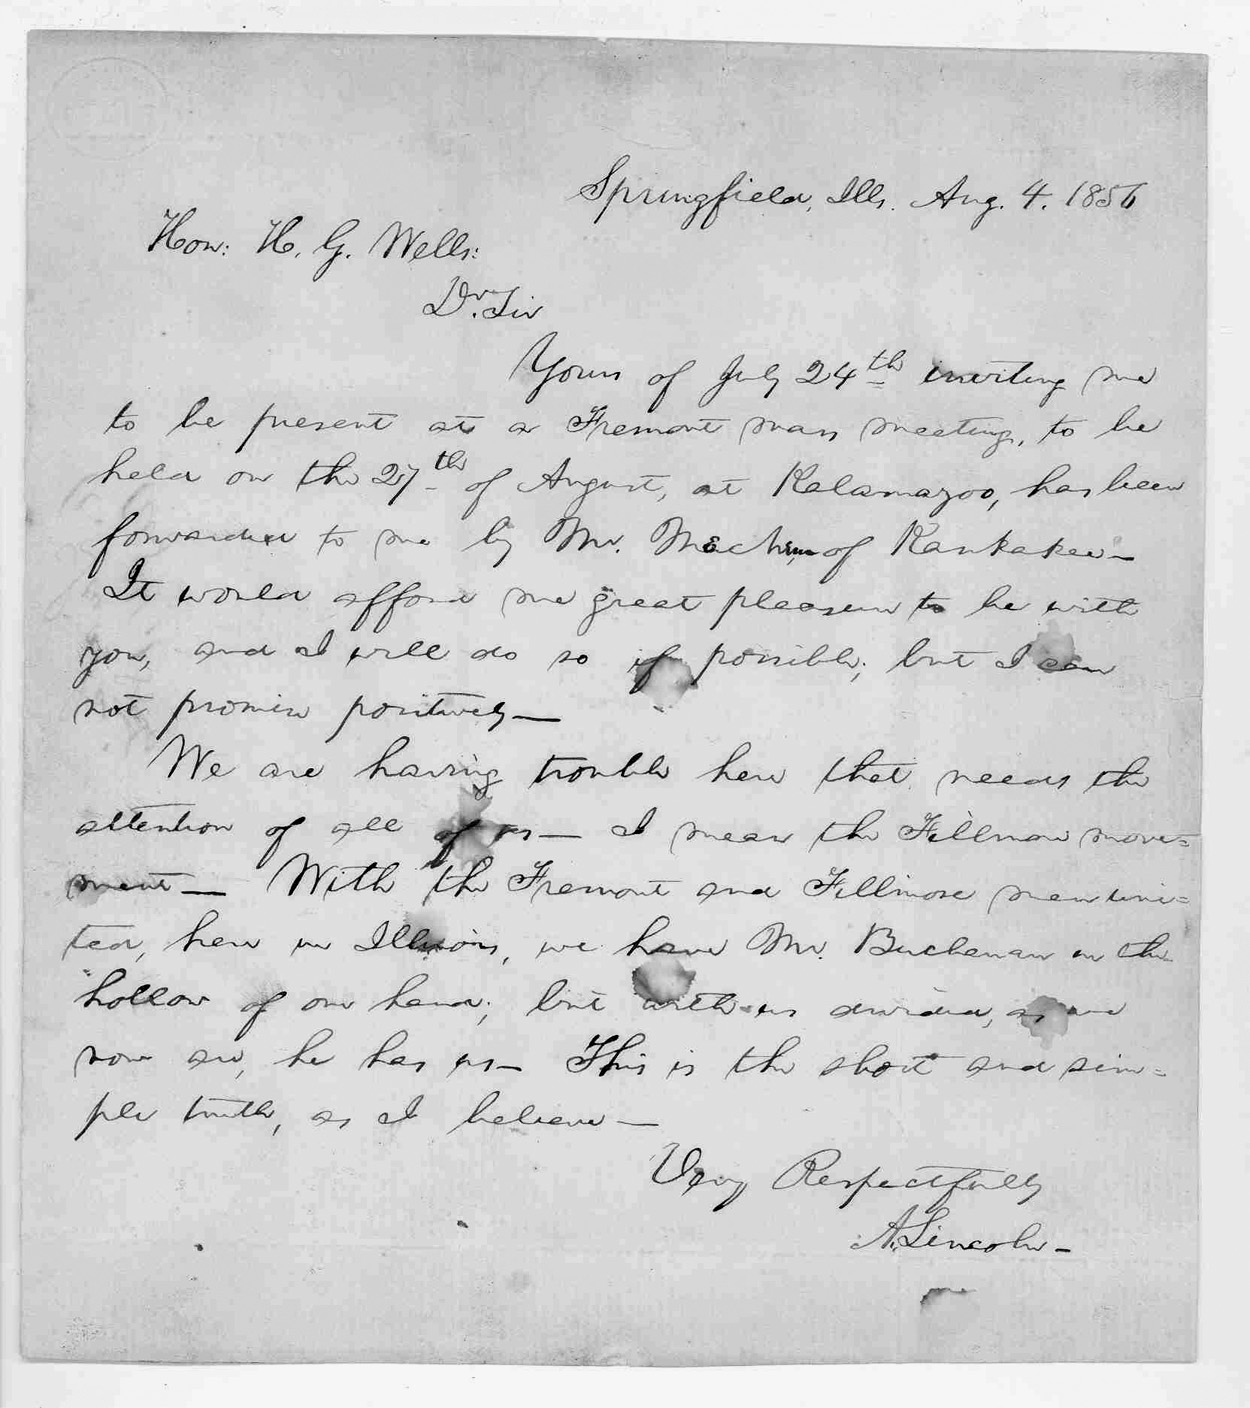 Figure 1. The August 4, 1856, letter from Abraham Lincoln to Hezekiah Wells is preserved at the Kalamazoo Valley Museum in Kalamazoo, Michigan.